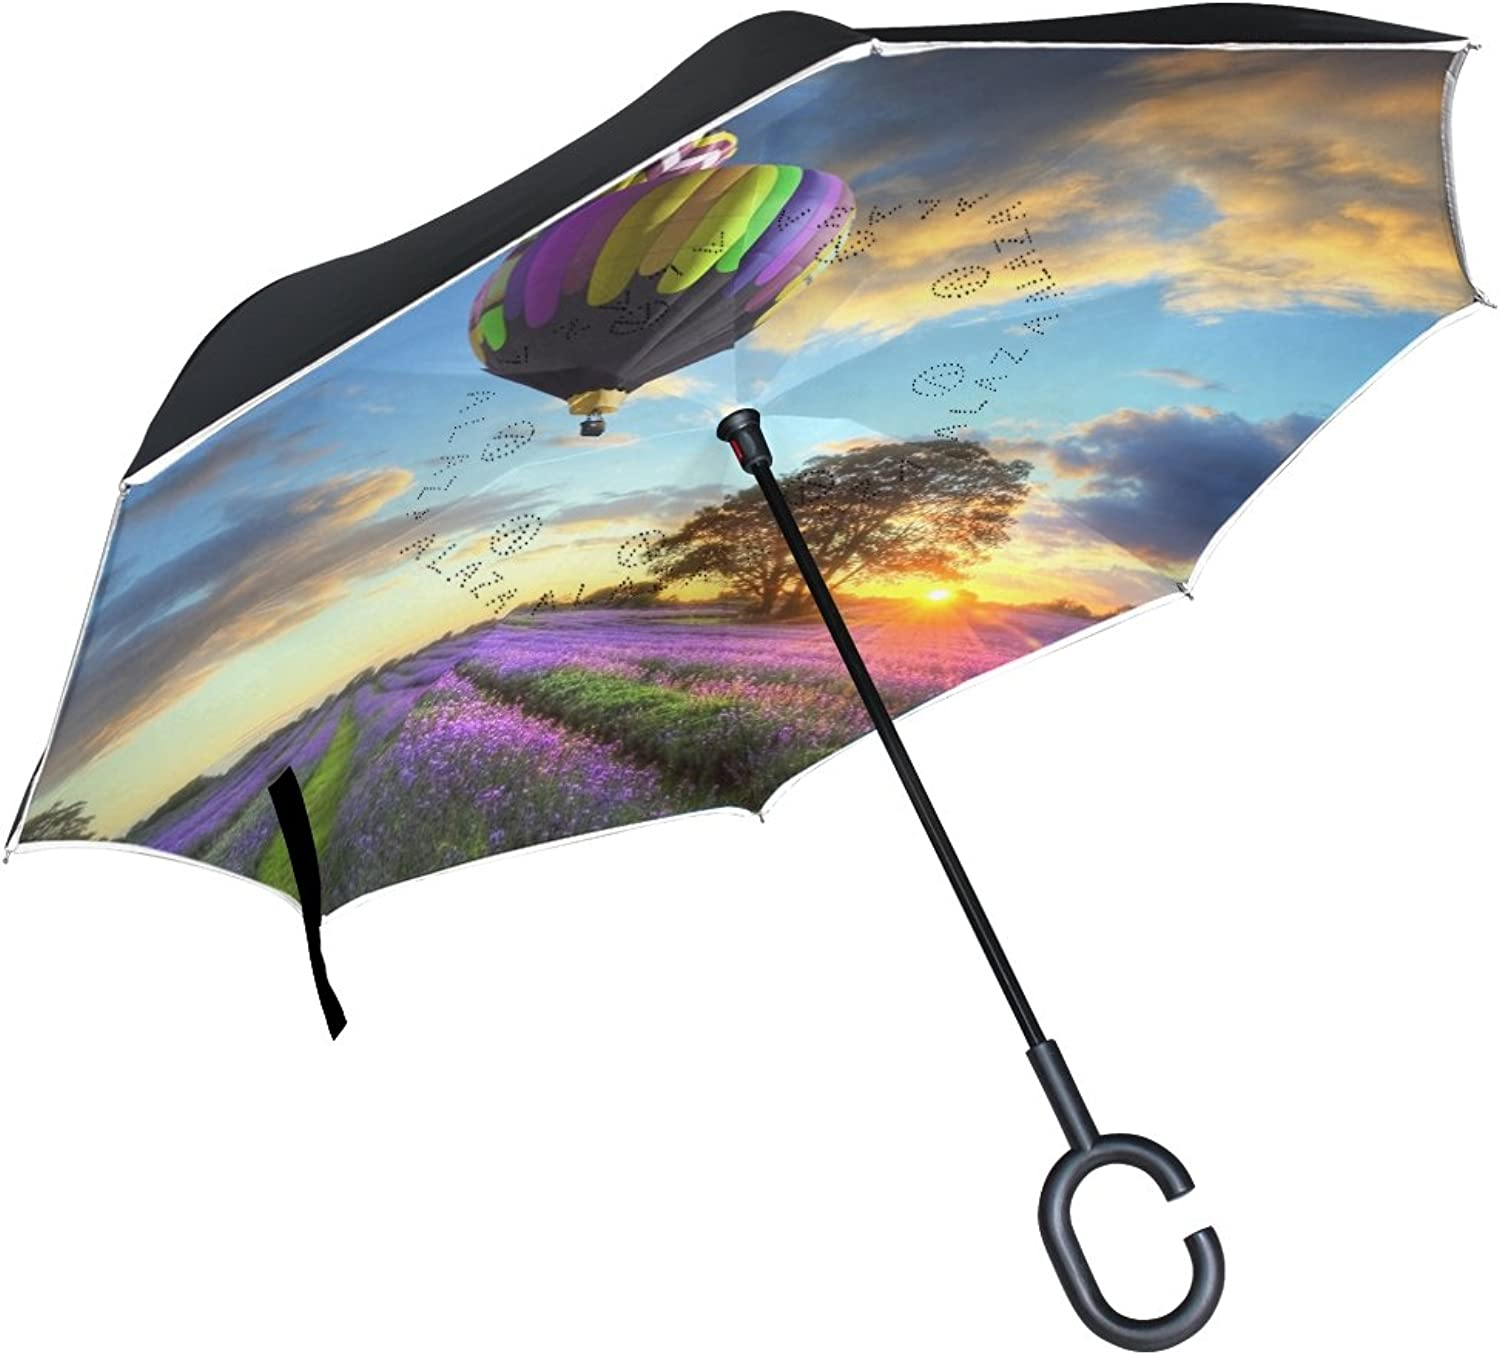 Imobaby Jennifer Hot Air Ballons Flying Over Lavender Fields Straight Selfstanding Reserve Umbrella Double Layer Ingreened Folding Umbrella Waterproof Umbrellas for Car